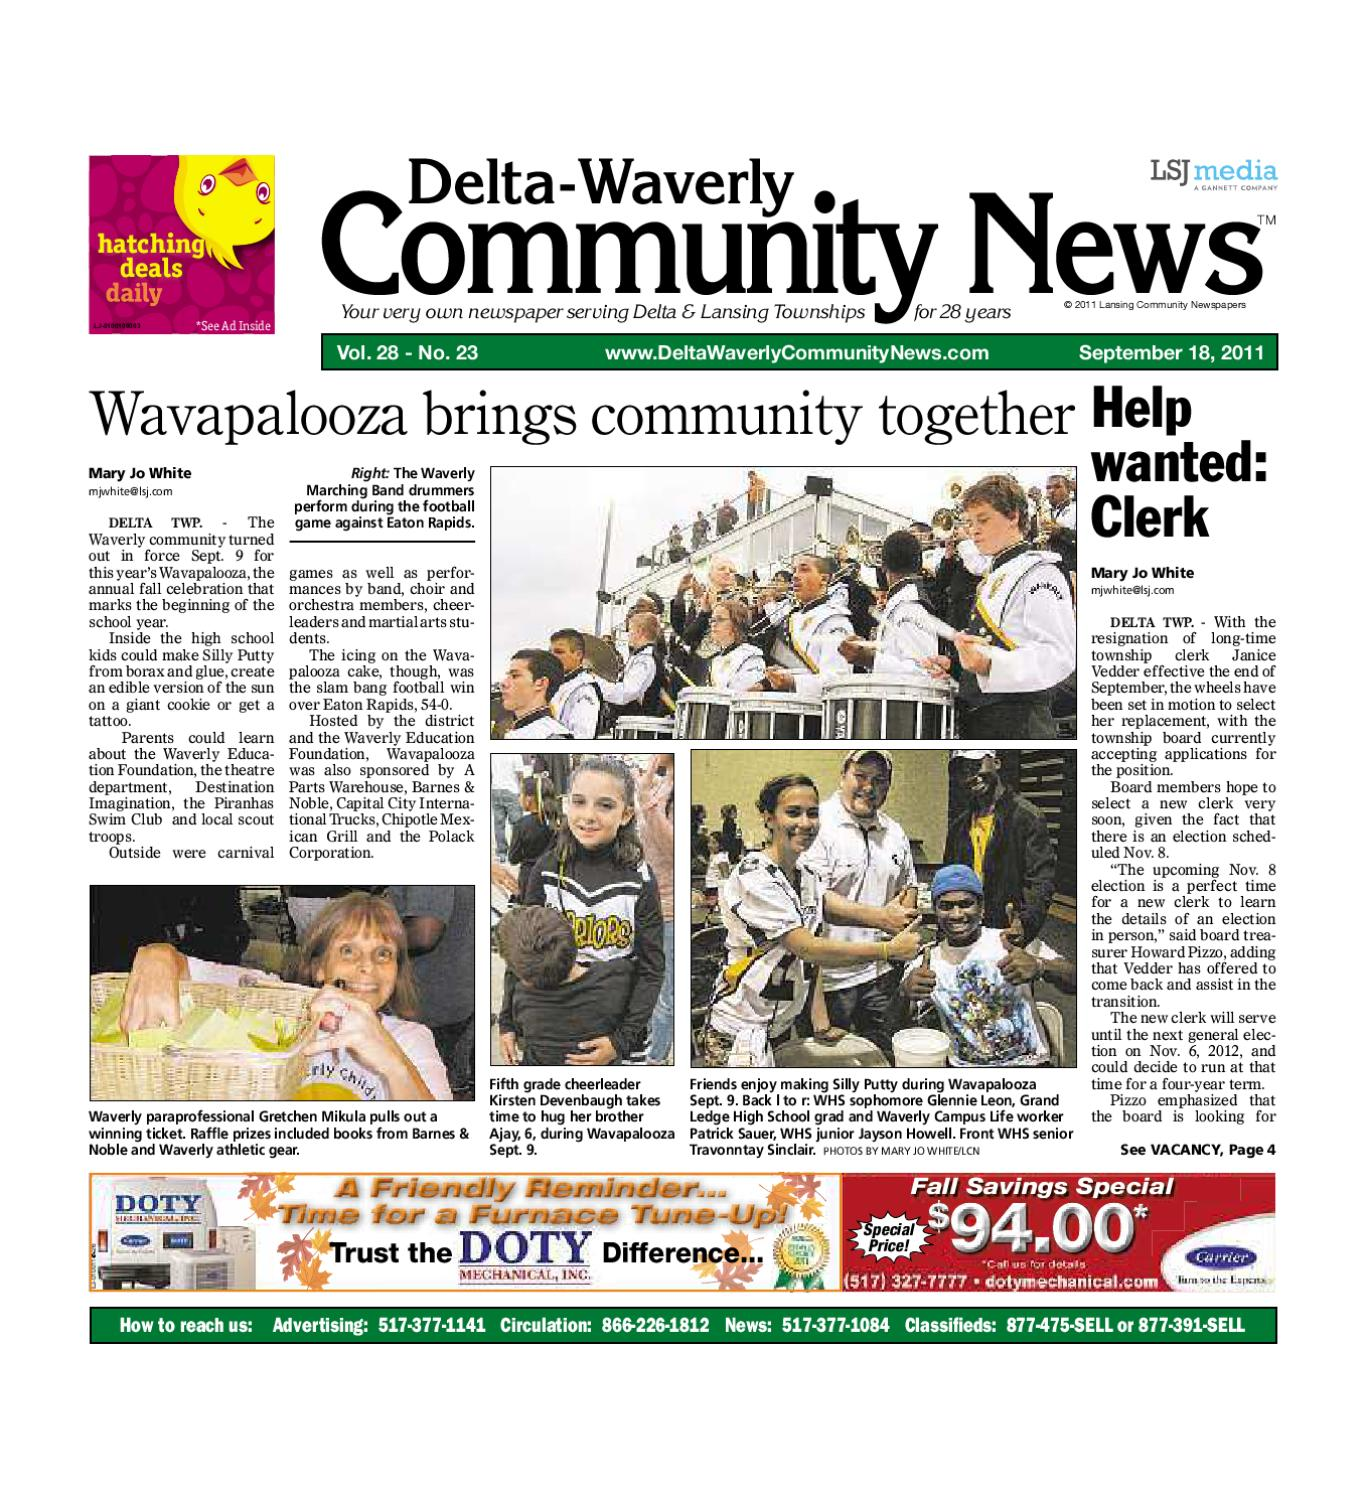 /dwcn_09_18_11 by Lansing State Journal - Issuu